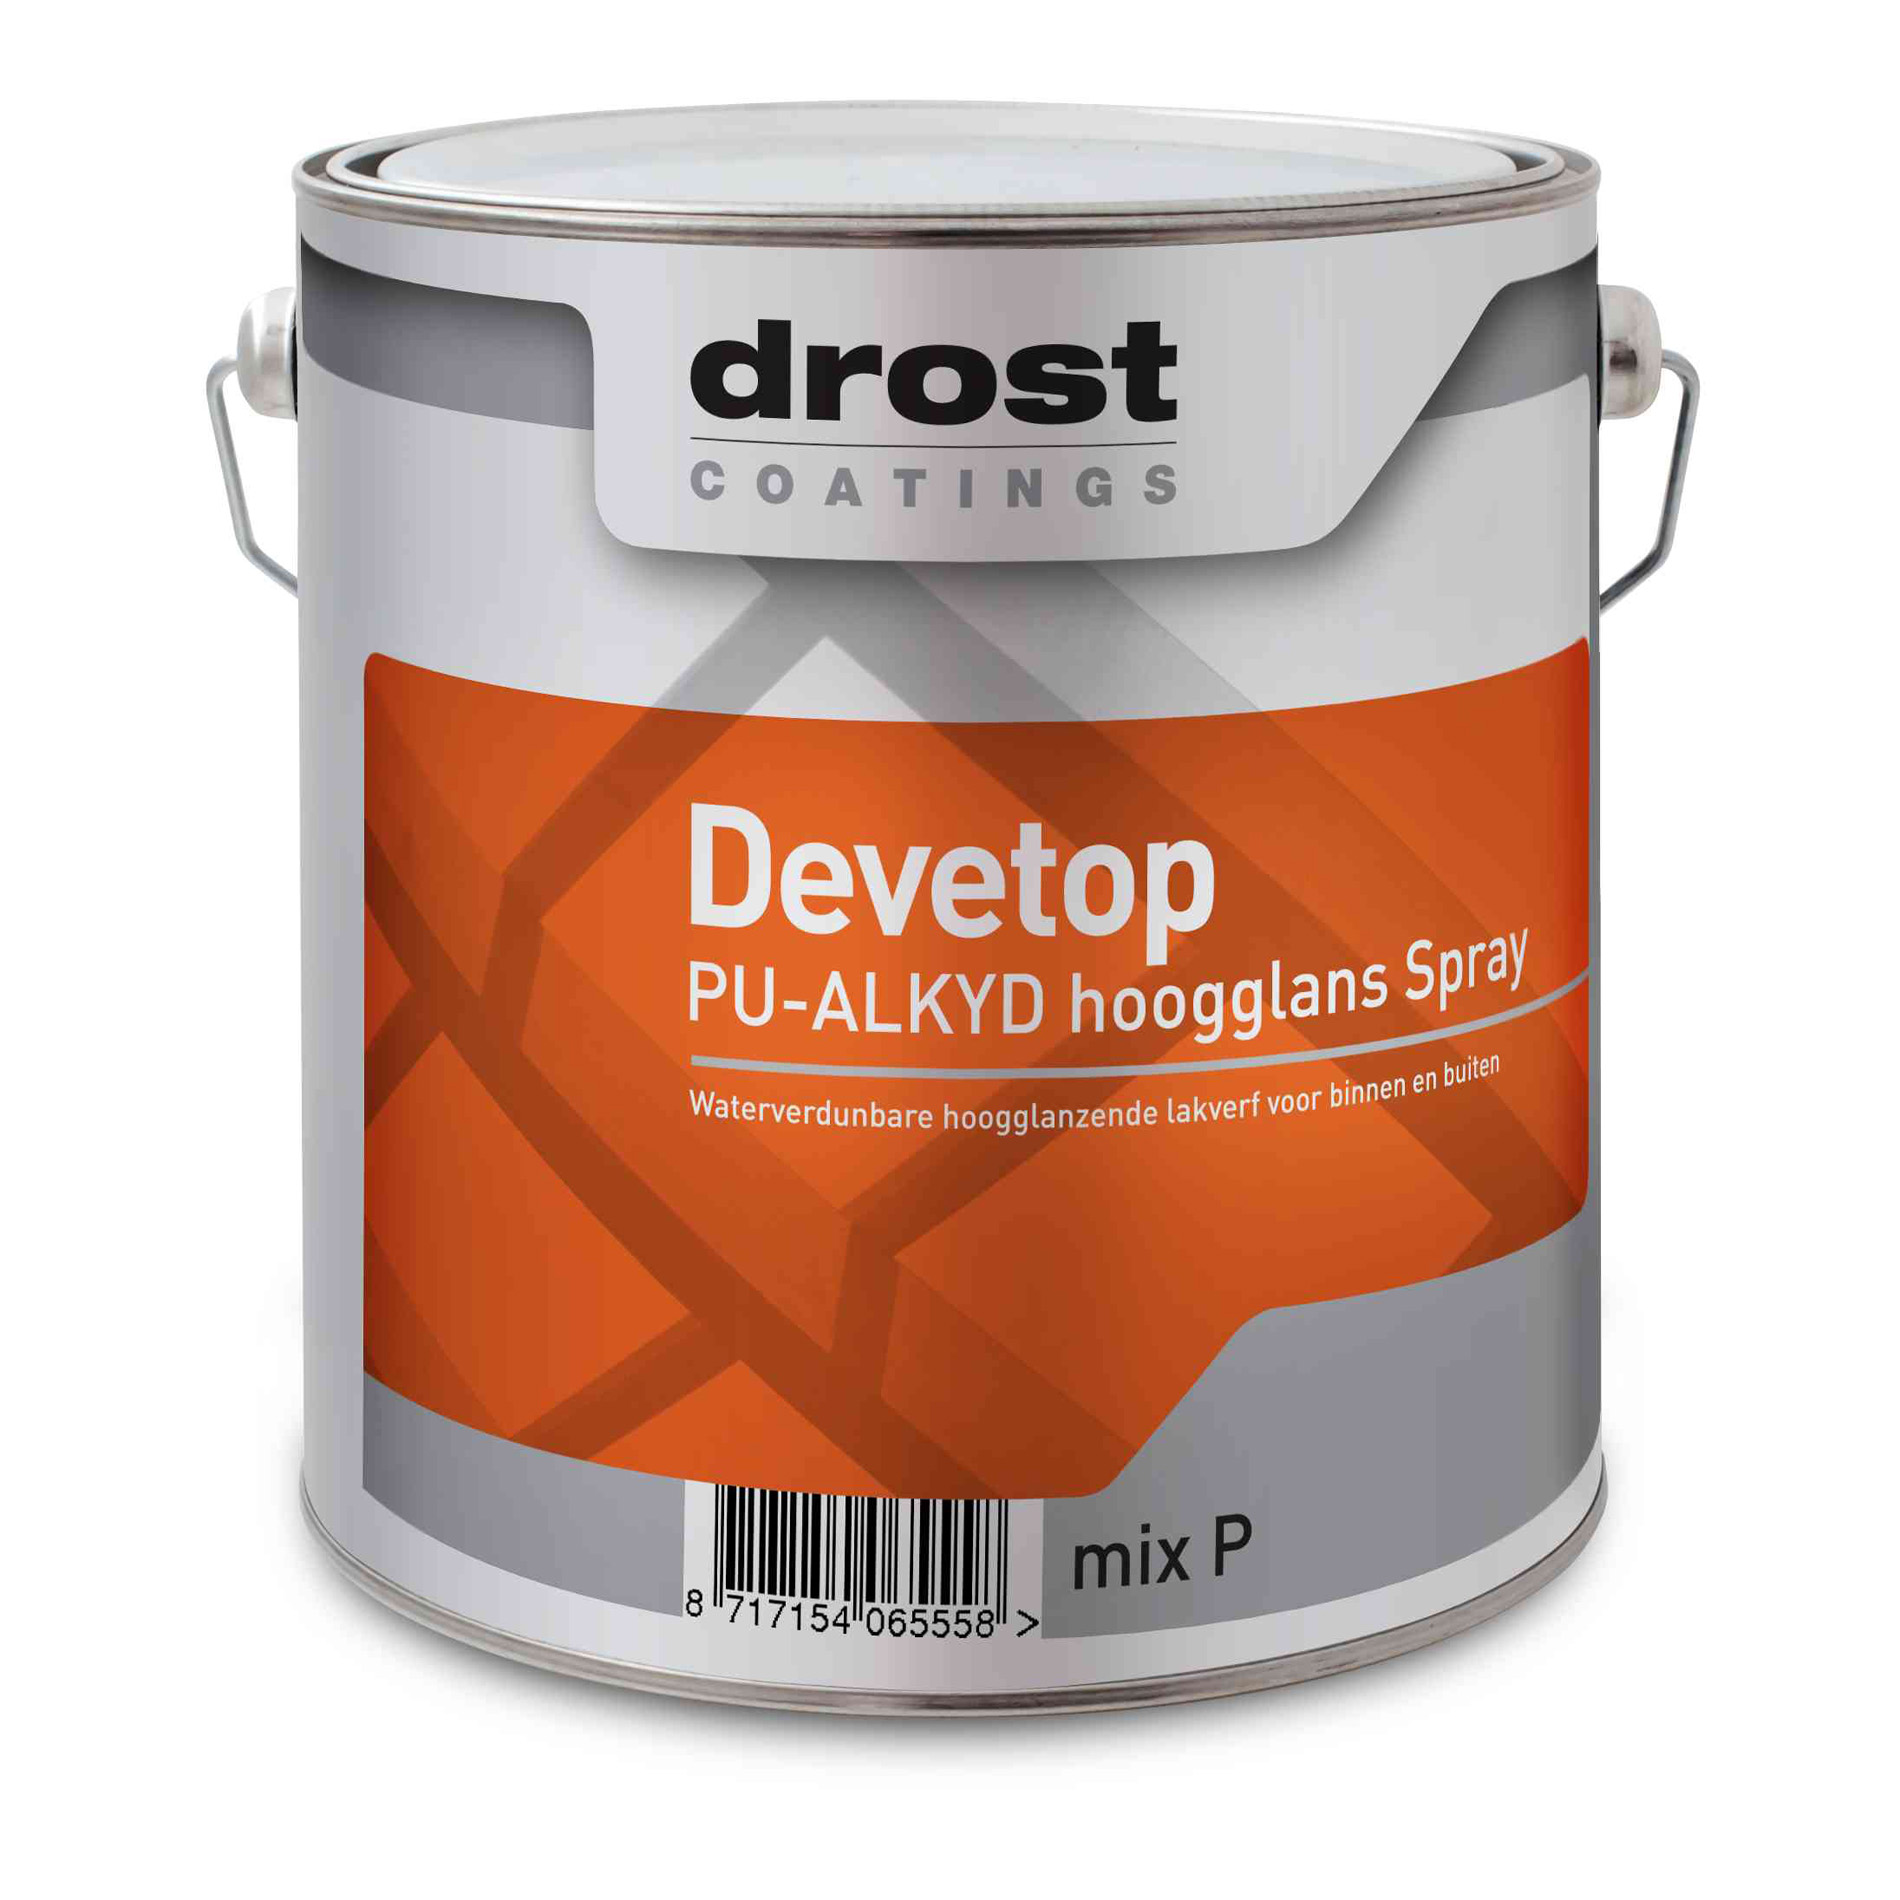 Drost Devetop PU-Alkyd Hoogglans Spray